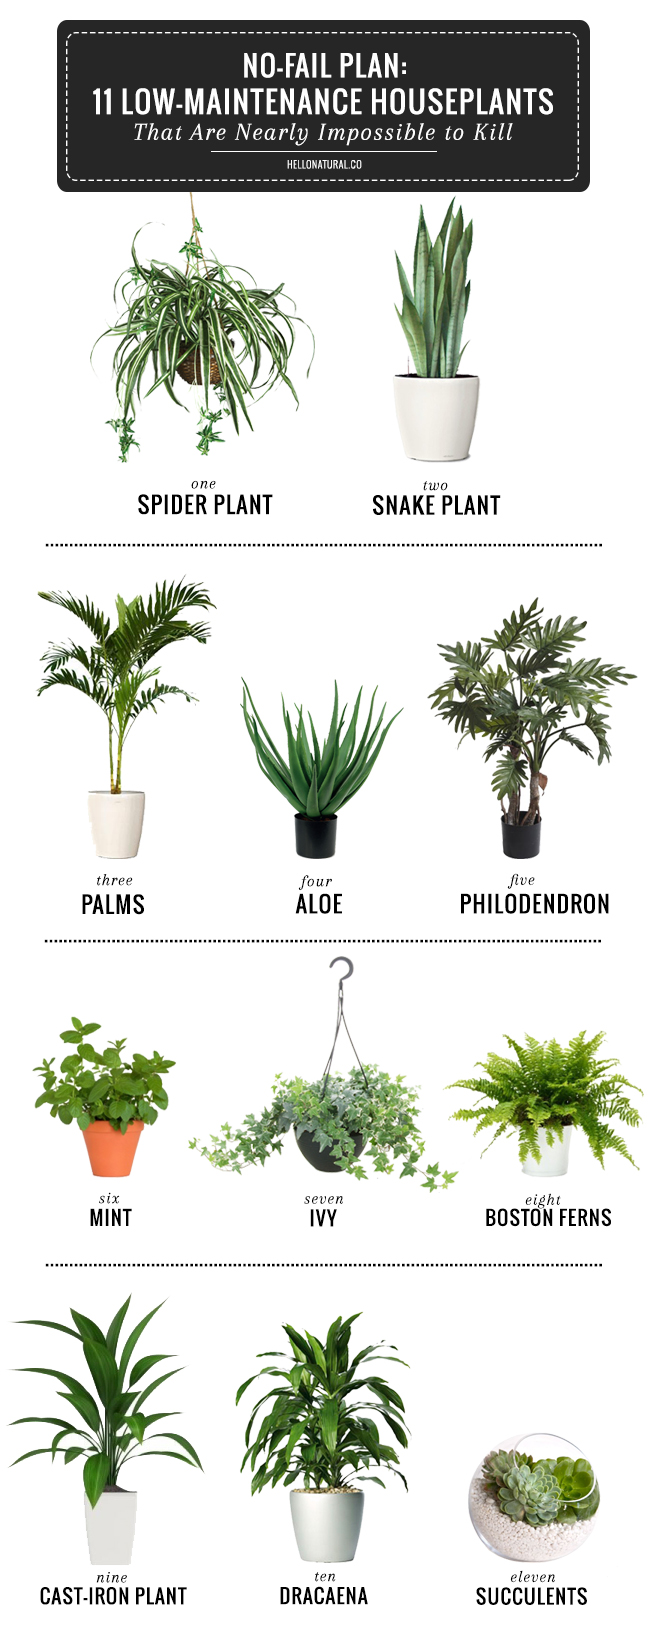 11 hard to kill plants all created for Plants that require no maintenance